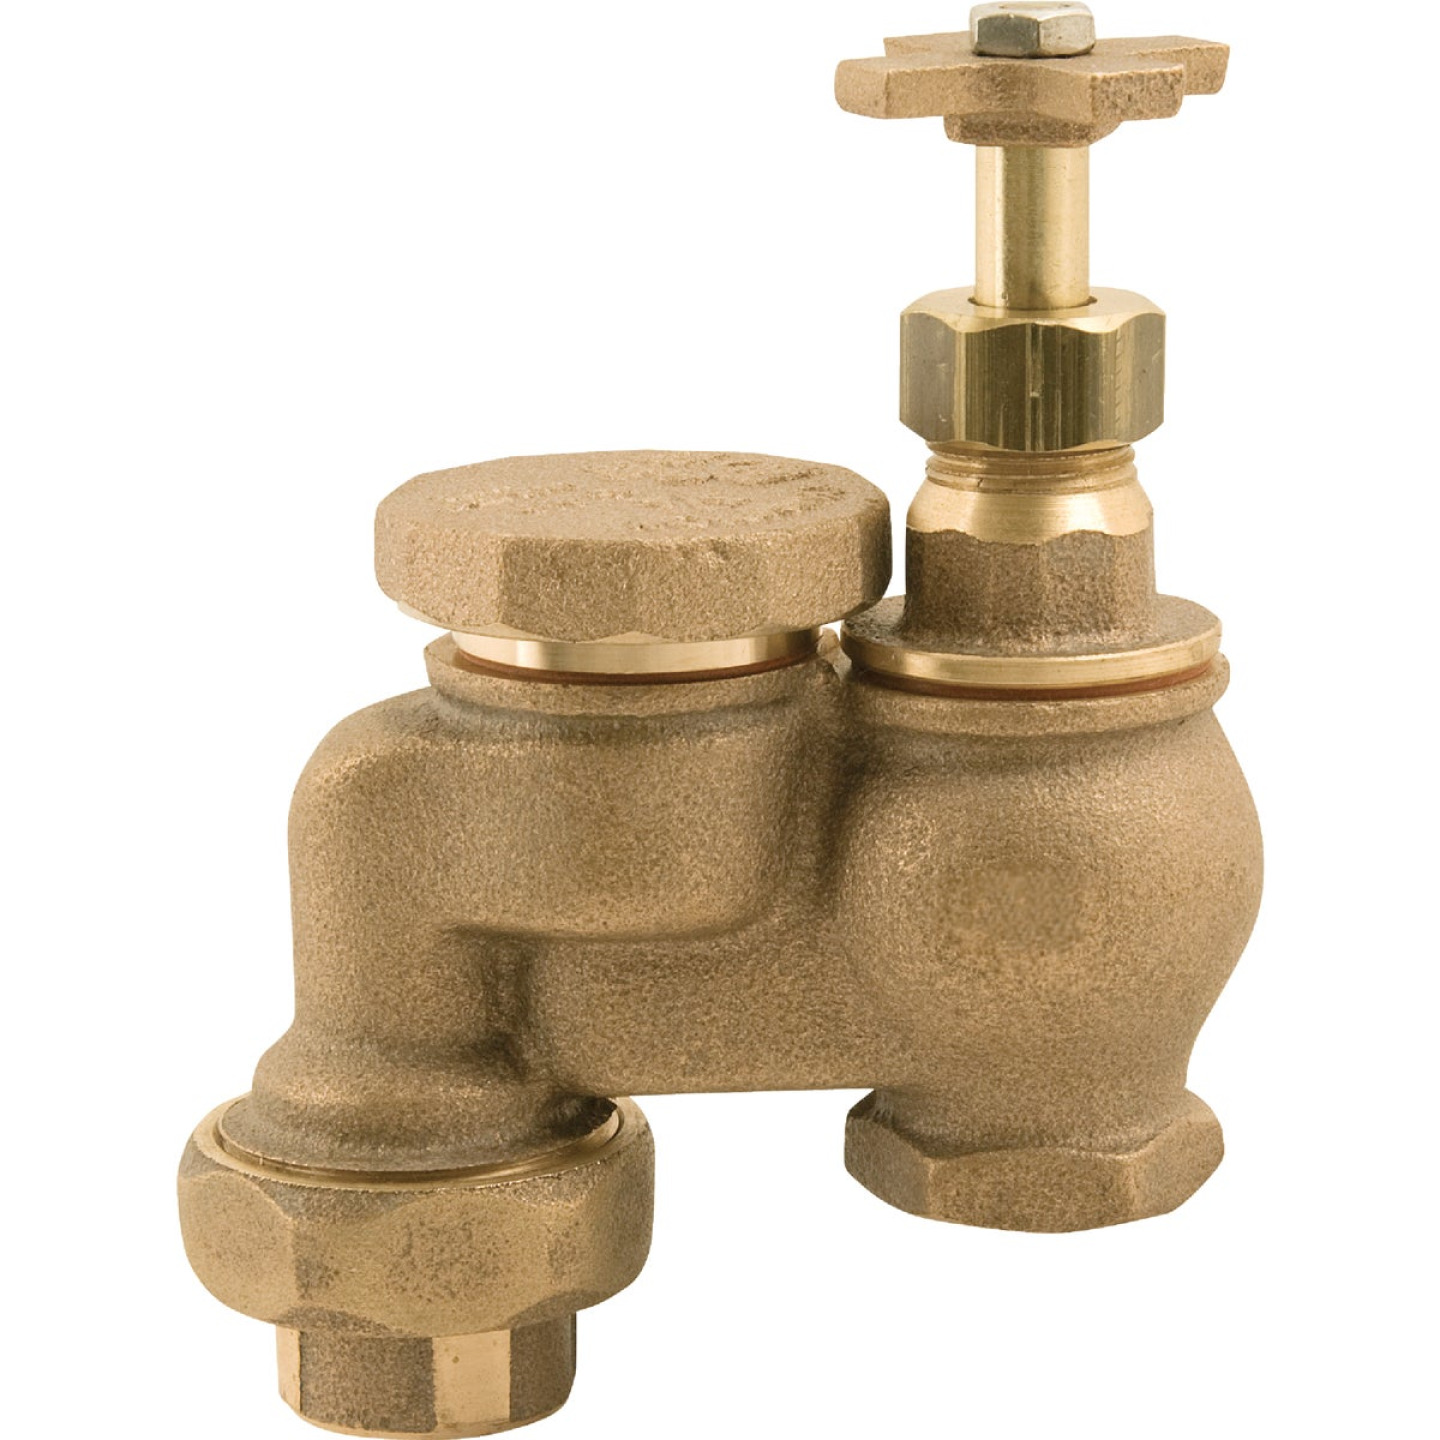 Champion 3 4 In 25 To 150 Psi Anti Siphon Valve With Union Do It Best World S Largest Hardware Store